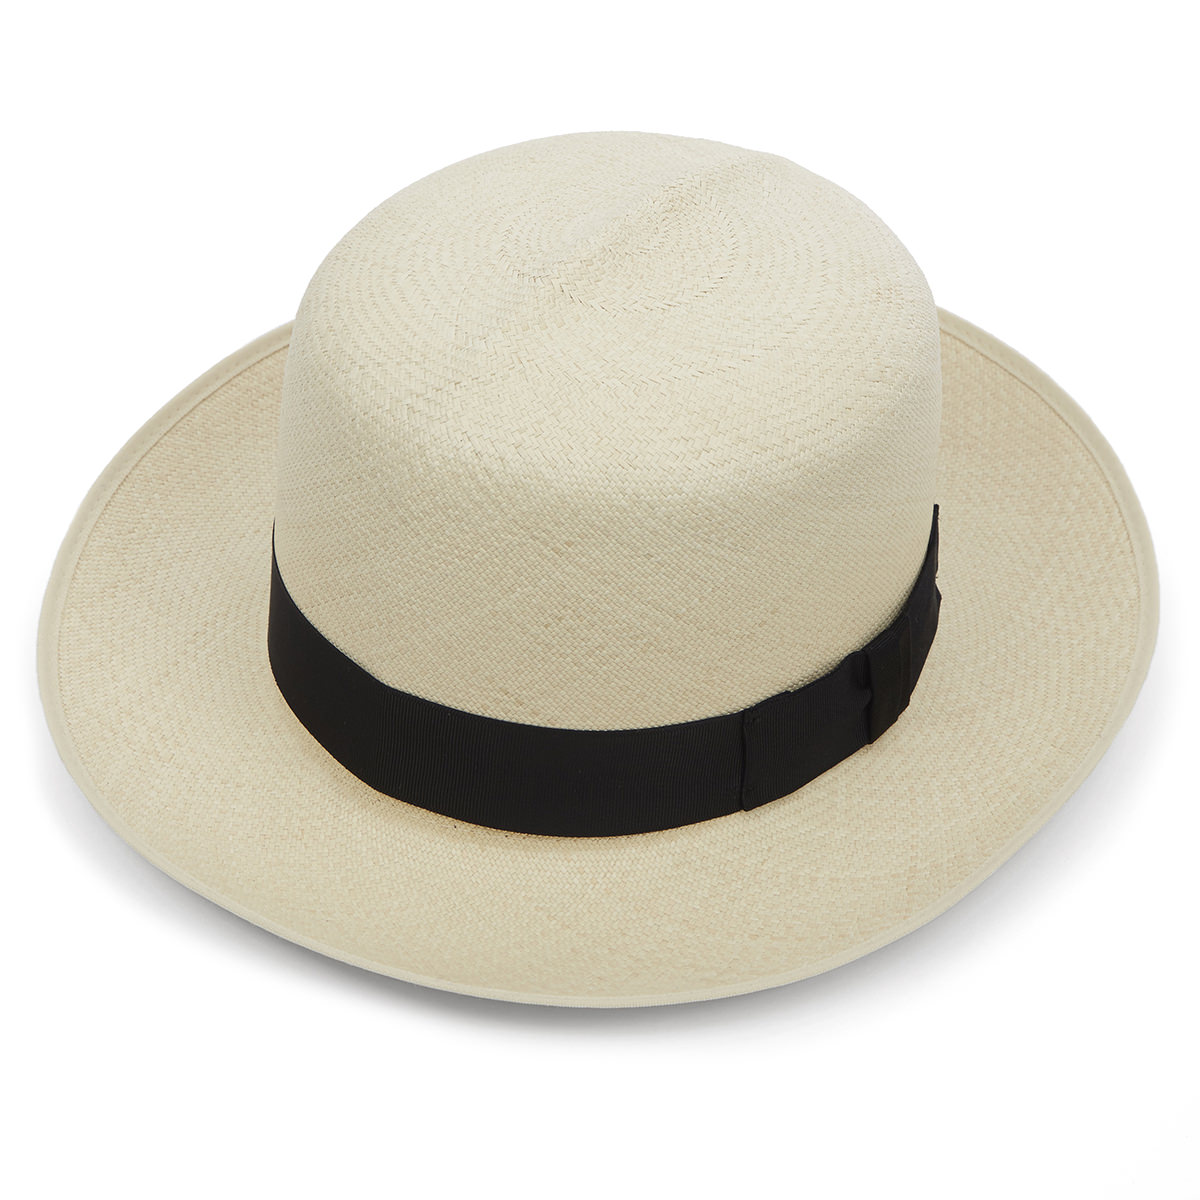 Highgrade Folder Panama Hat - Semi Bleached 55